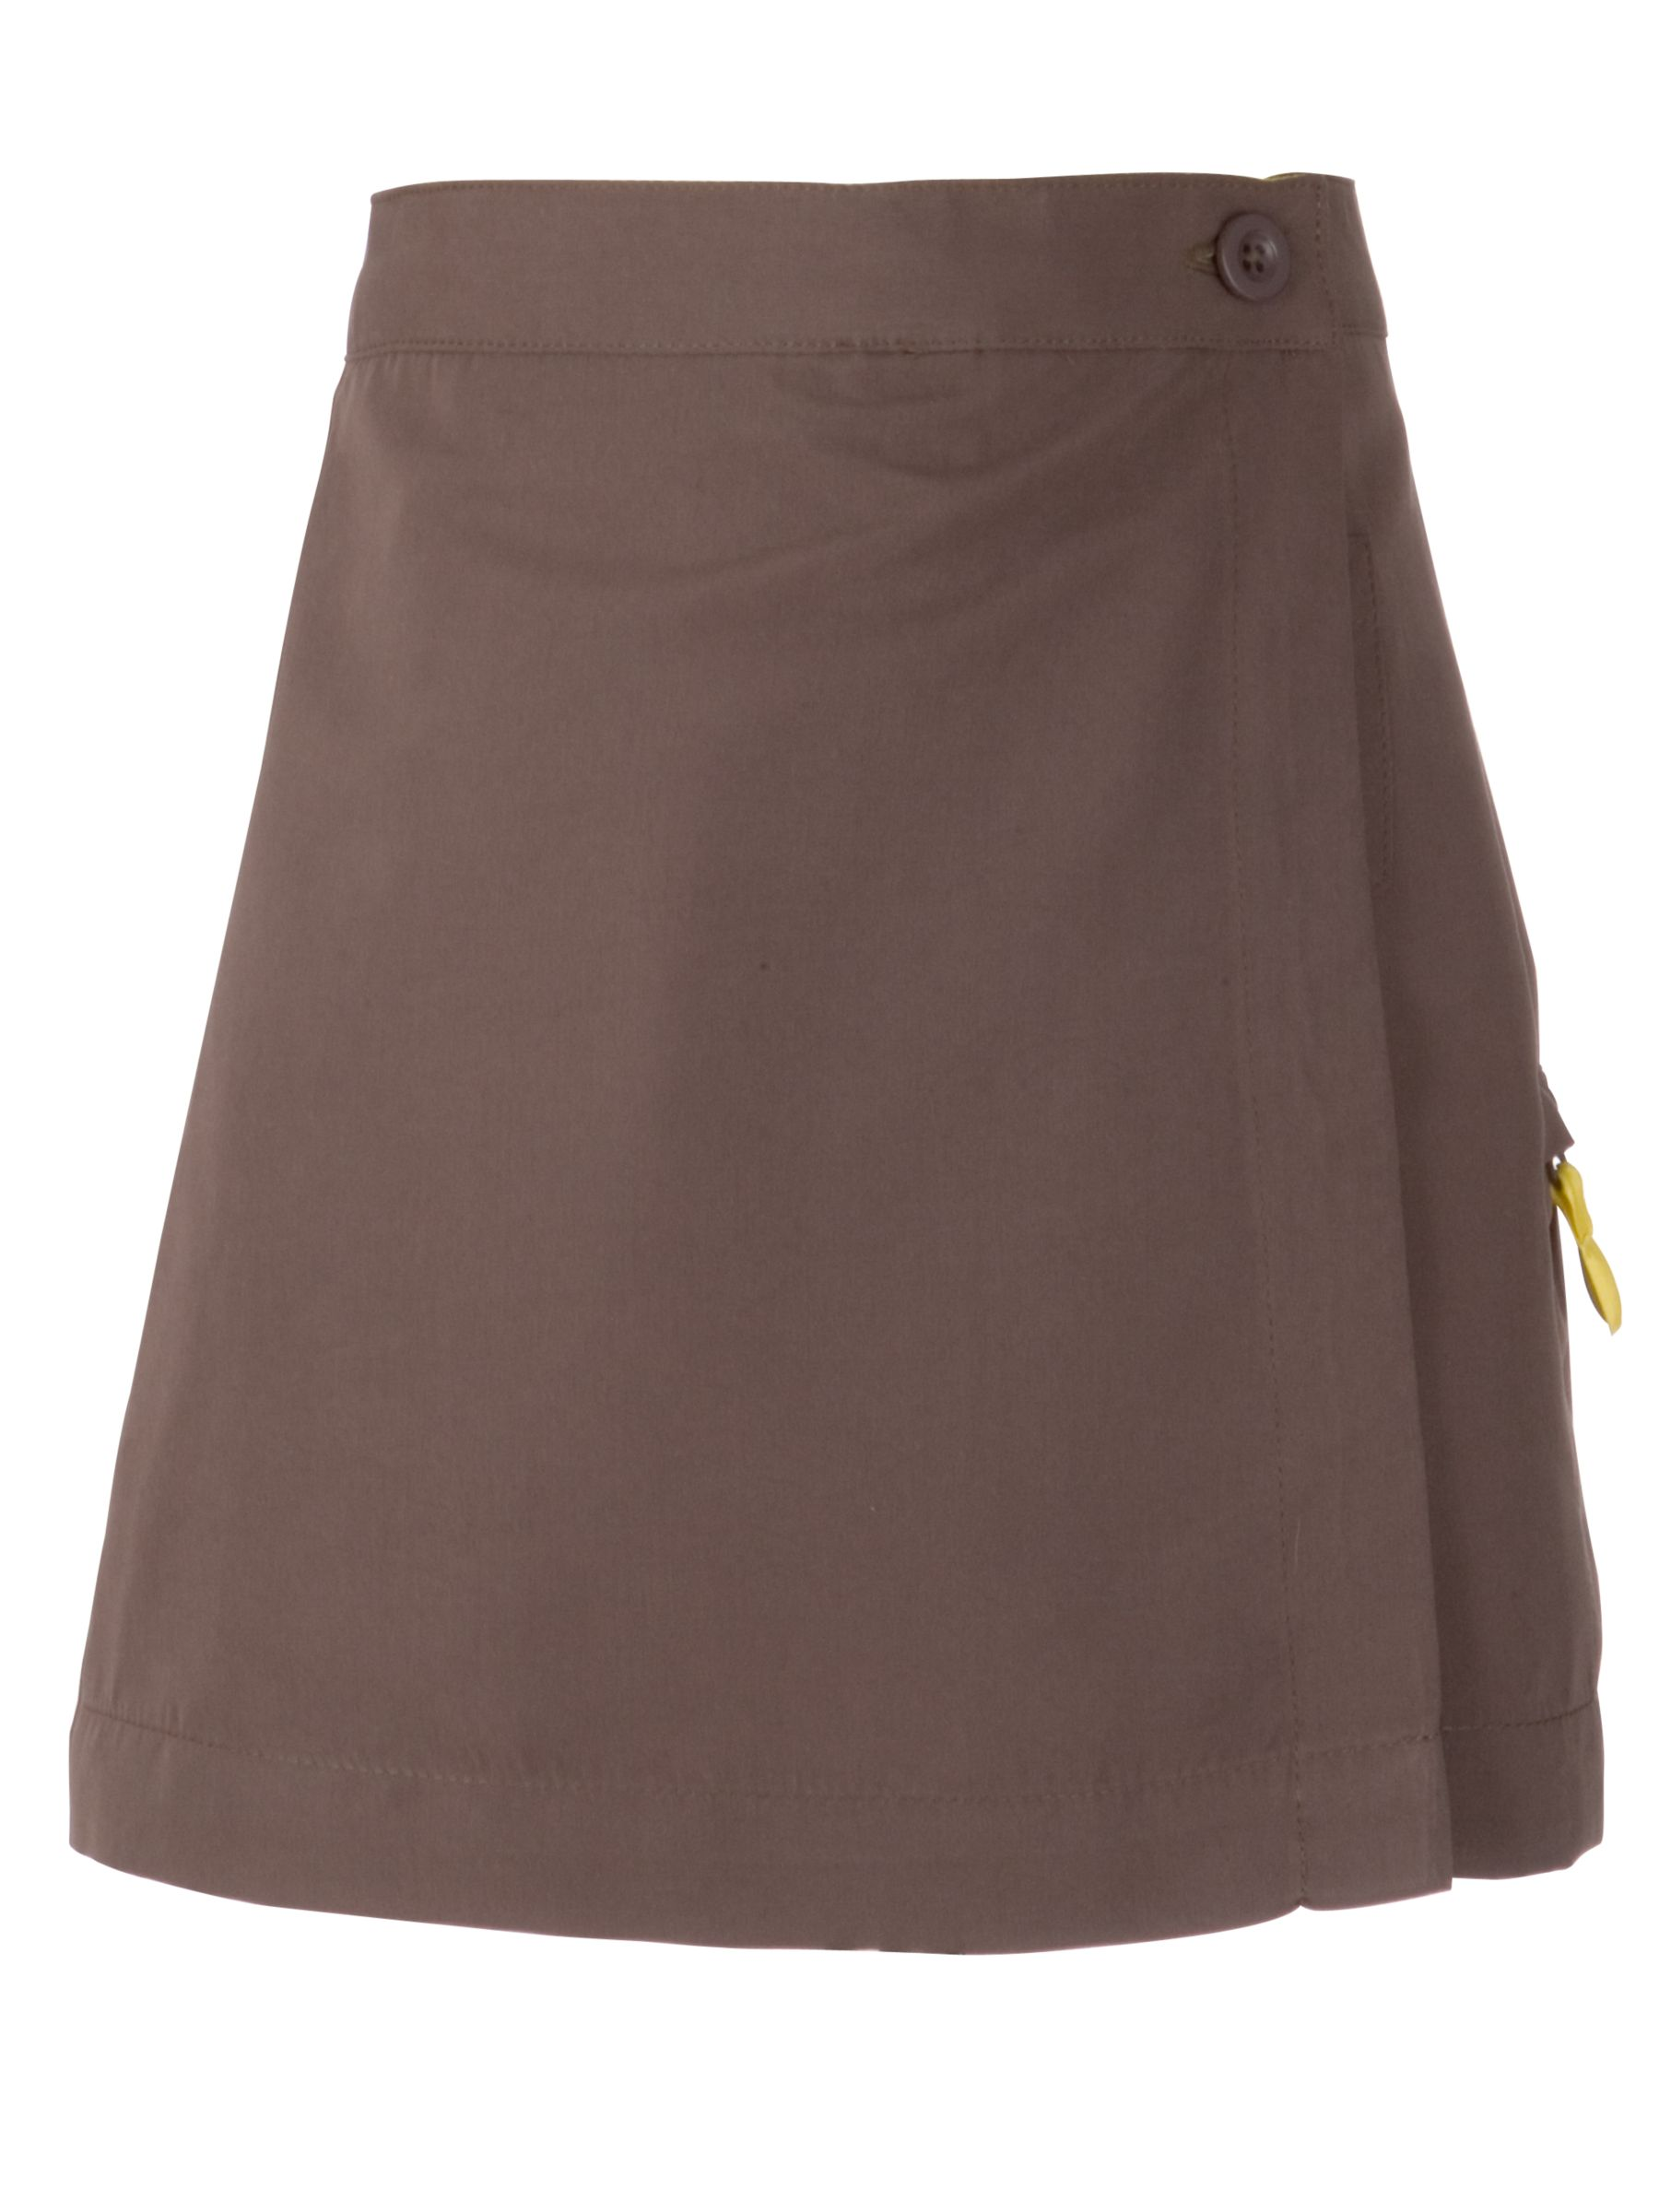 Brownies Brownies Uniform Skort, Brown